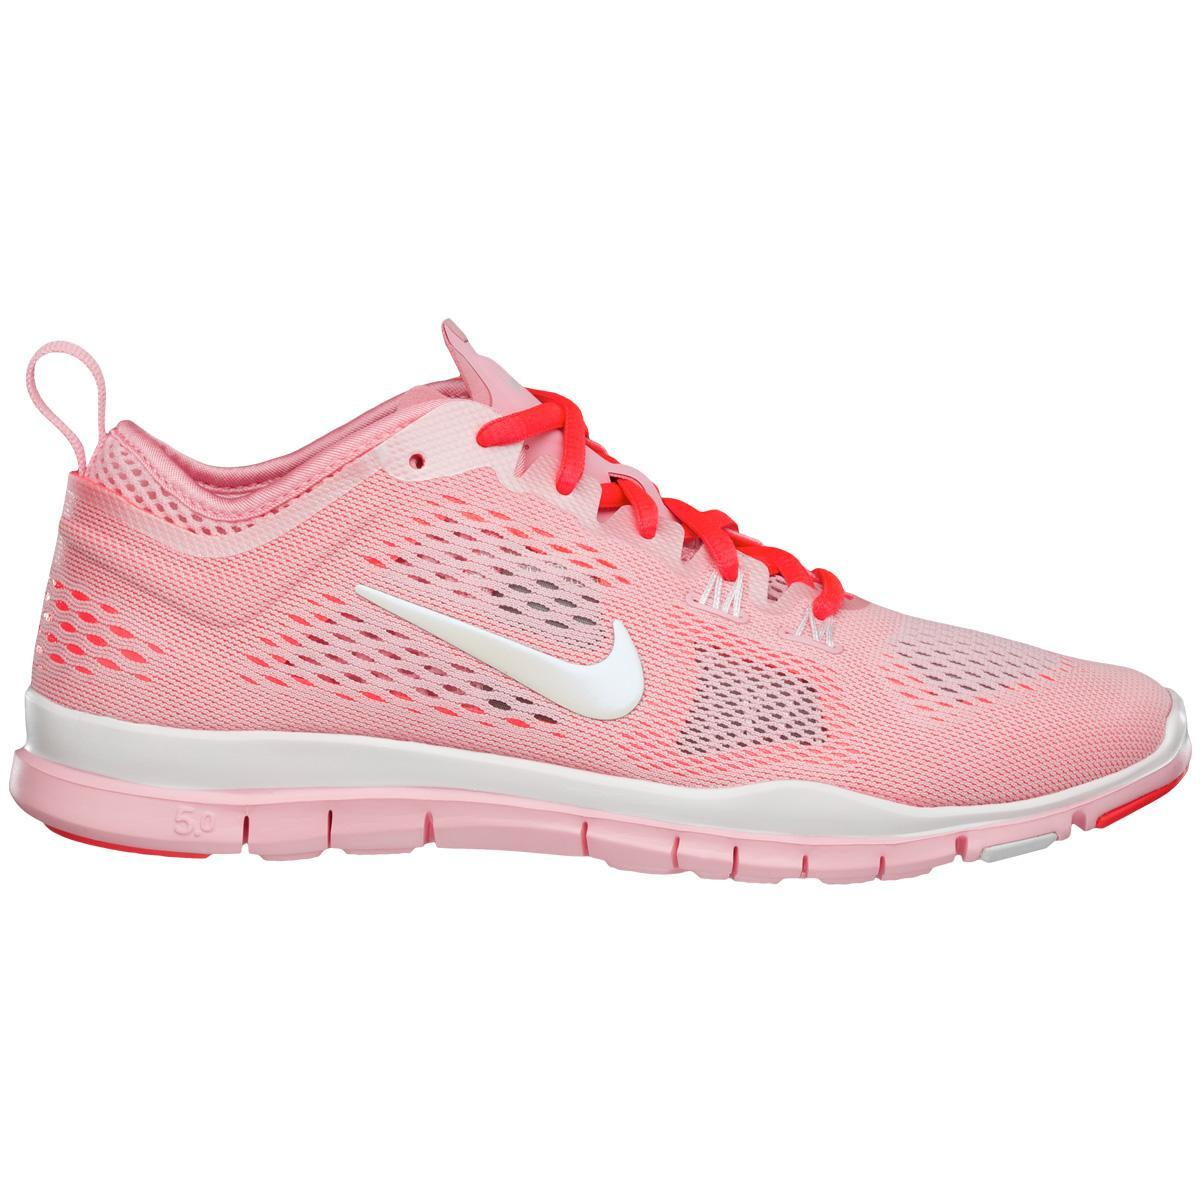 cheap for discount 57afb 1f28f Nike Womens Free 5.0 TR Fit 4 Breath Training Shoes - Pink/White